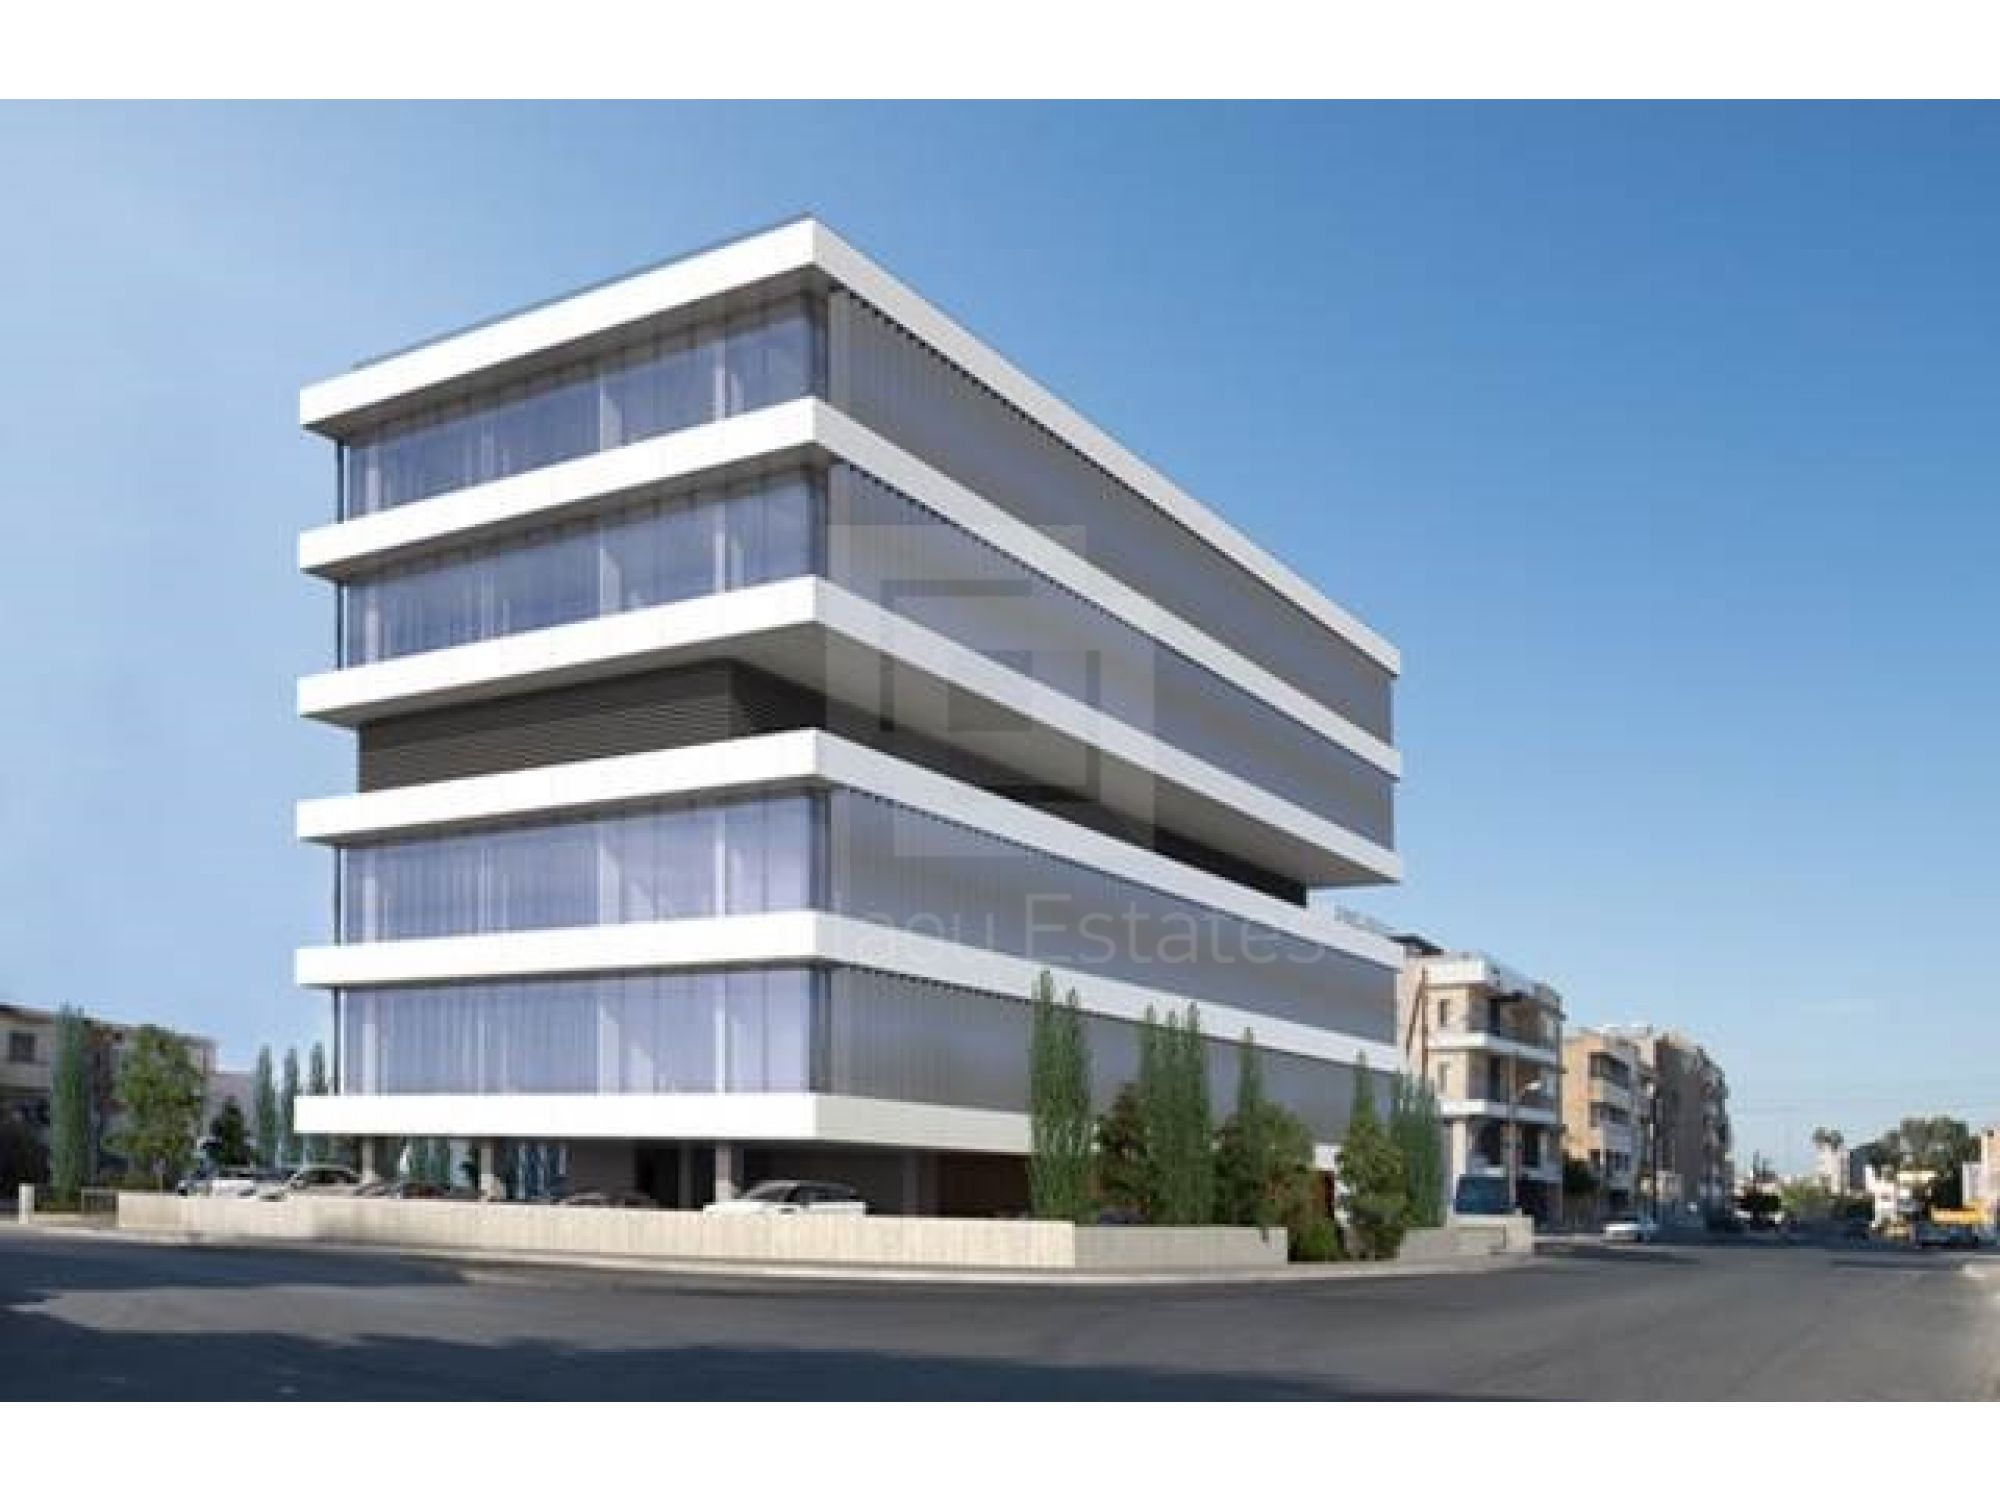 Commercial land for sale with approved building permits commercial building with ground floor plus five floors